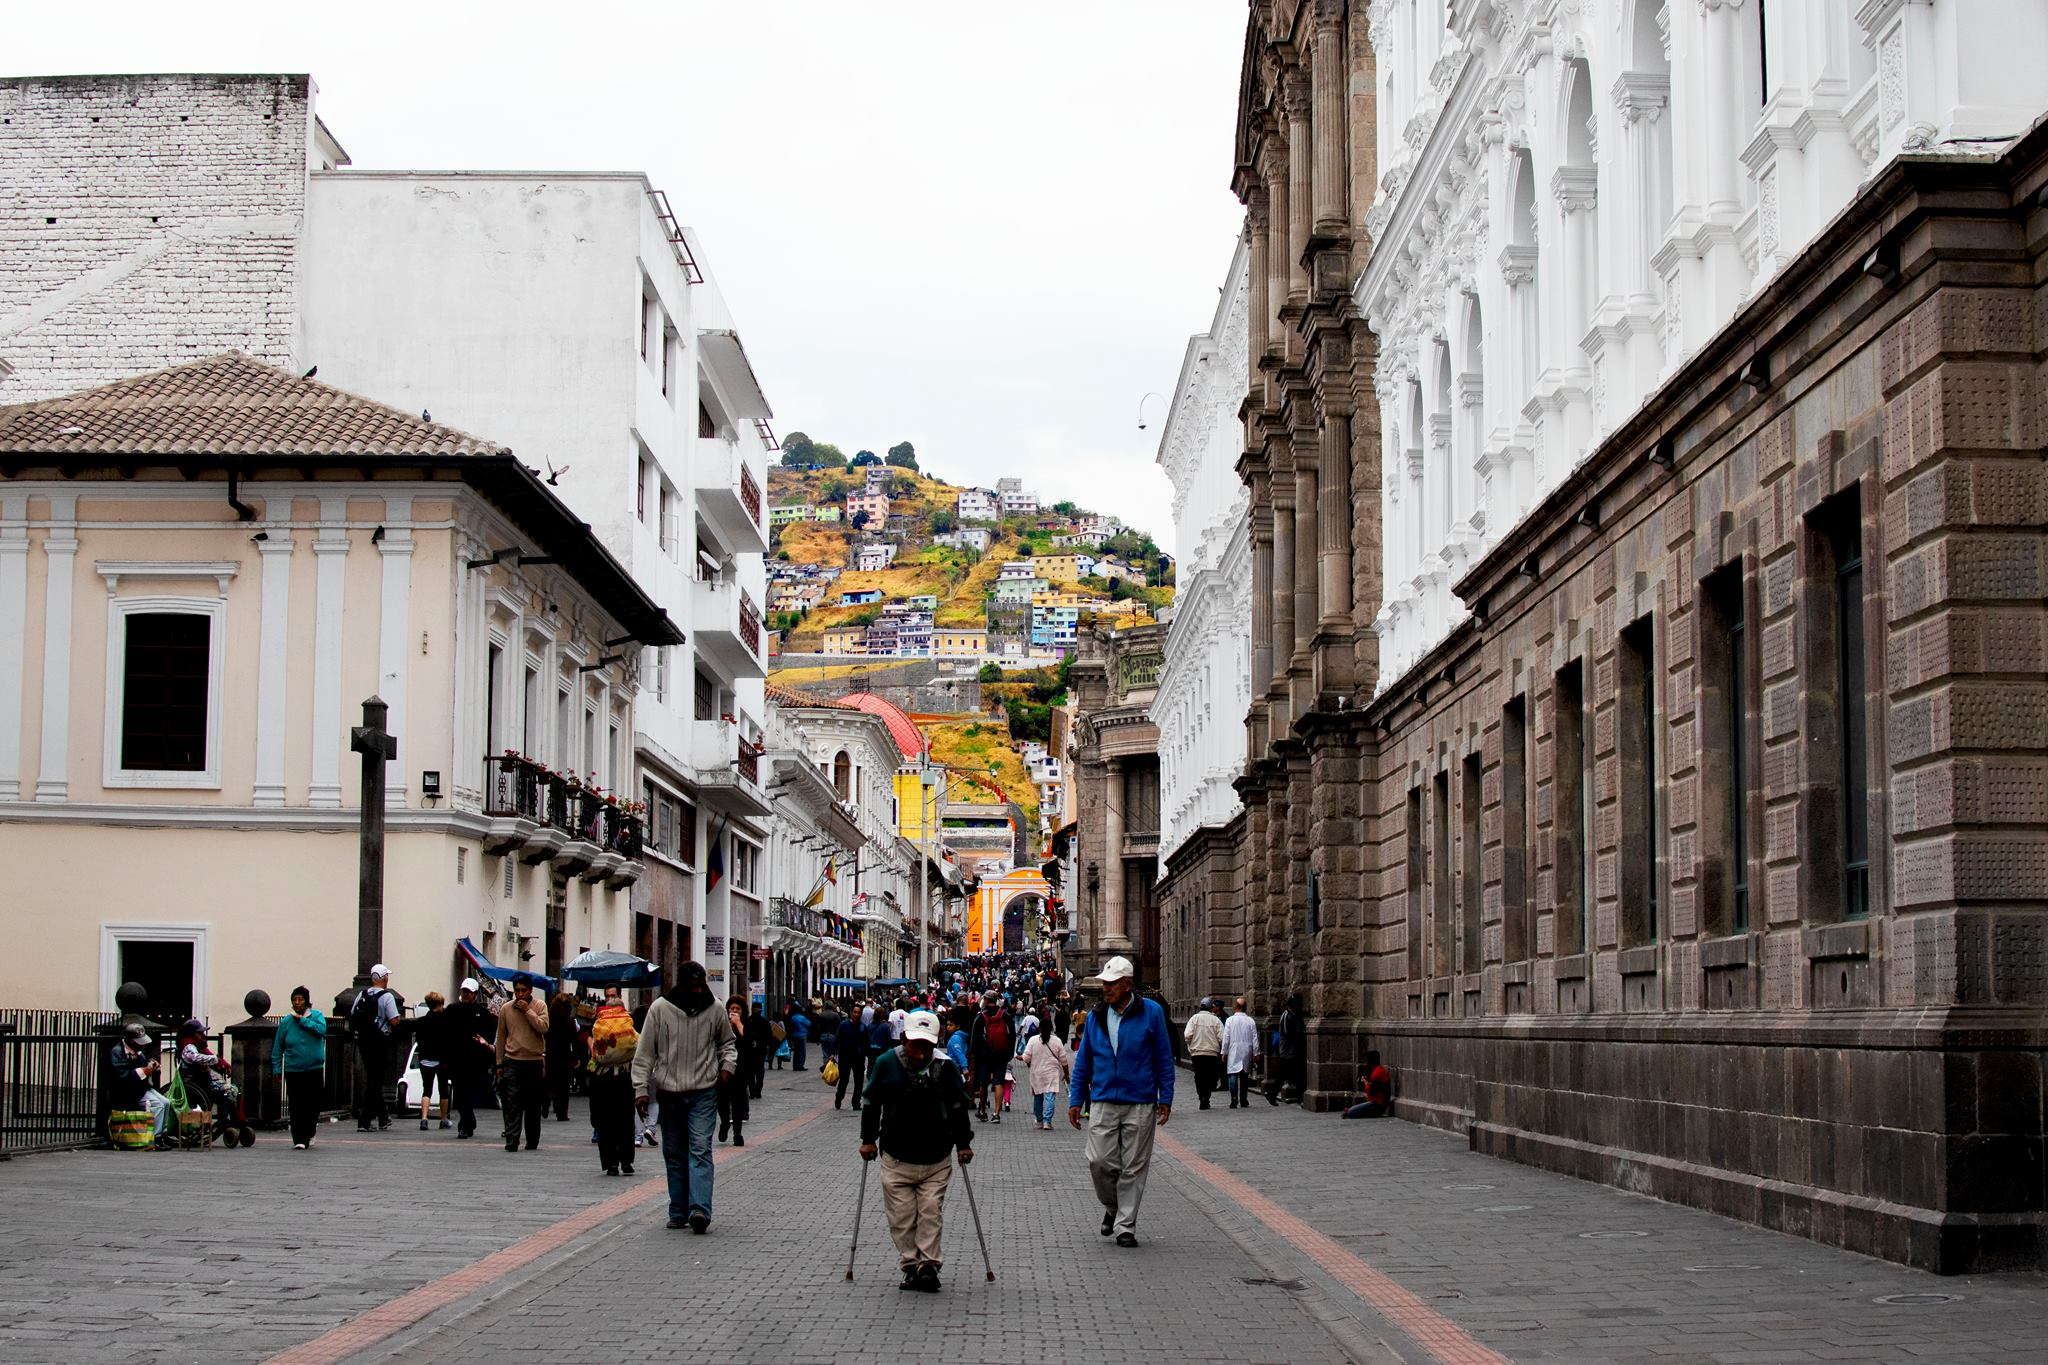 The town of quito with colourful yellow houses on the hill in the background